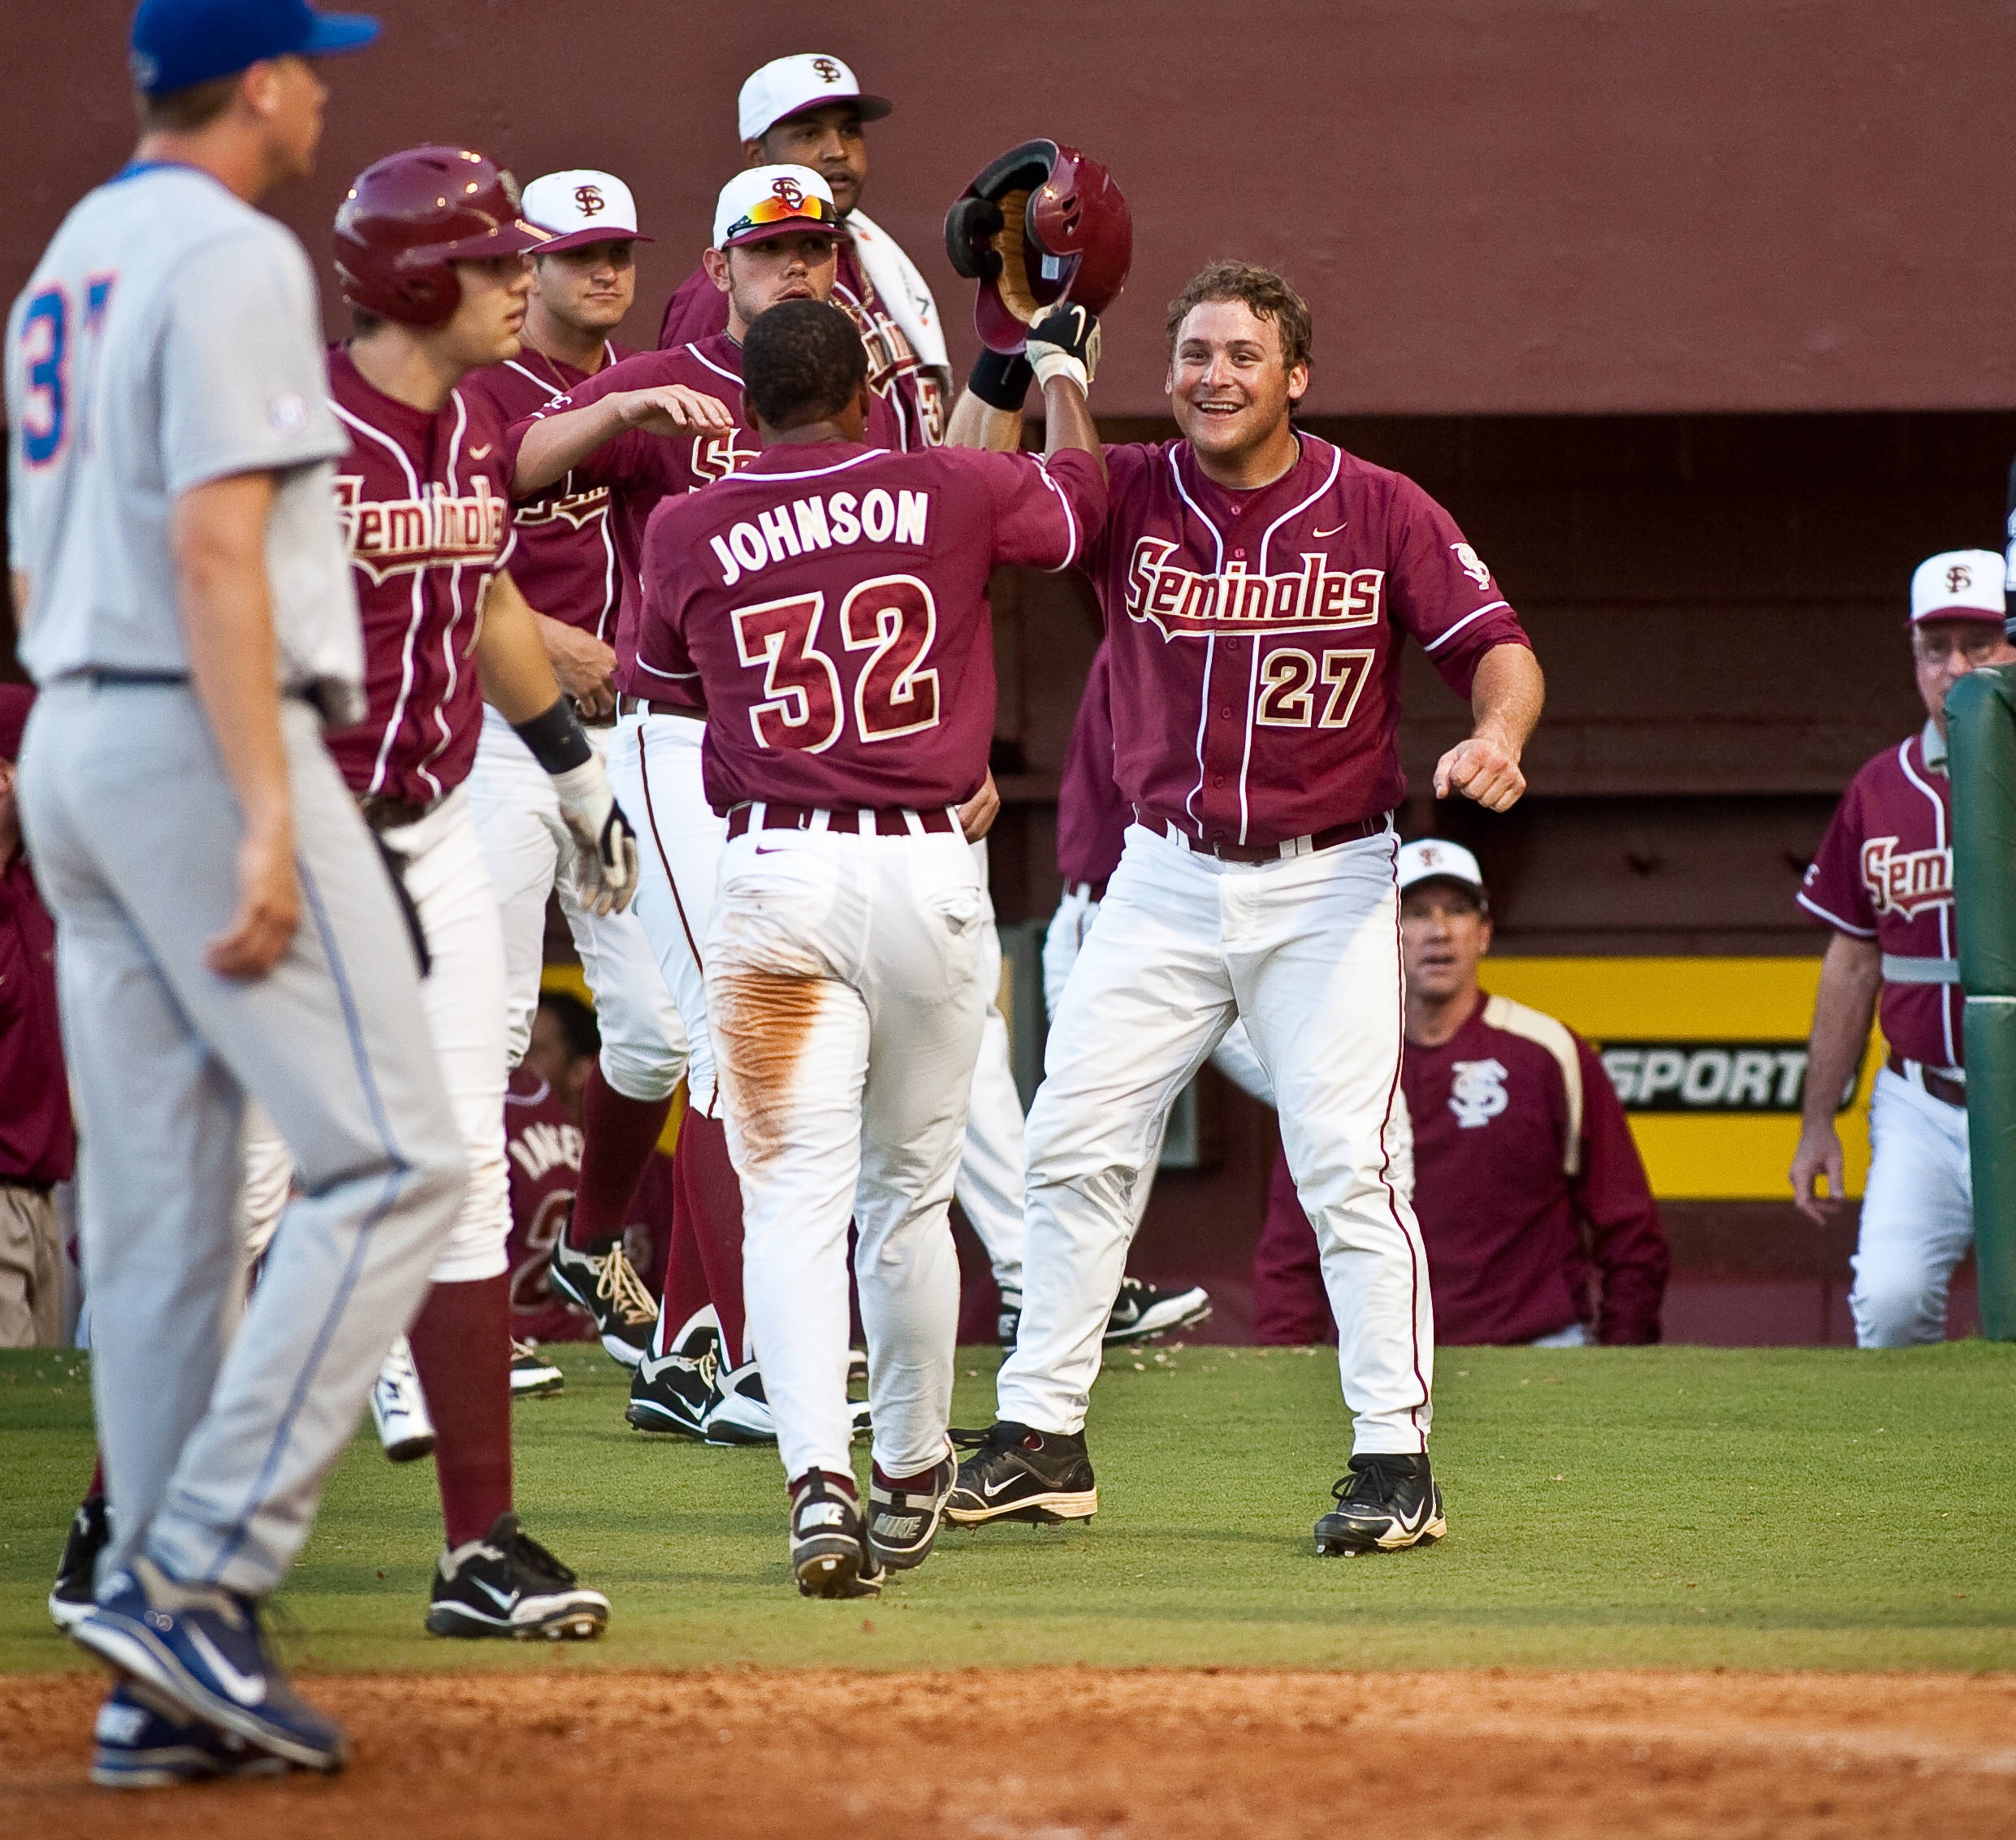 Sherman Johnson (32) is greeted by teammates after scoring on a wild pitch